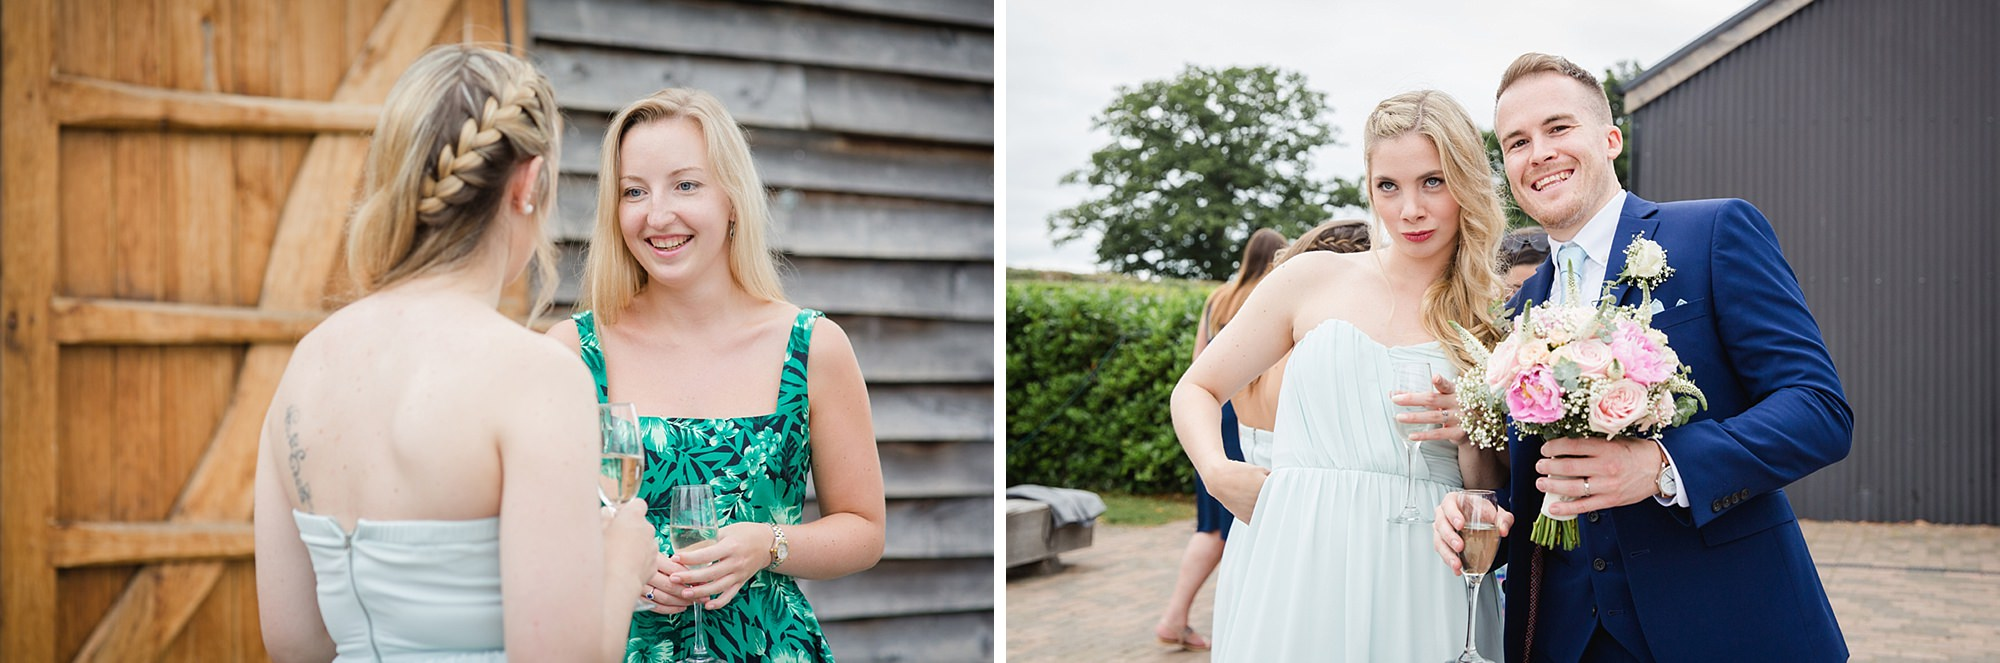 Old Greens Barn Newdigate wedding photography fun wedding guests